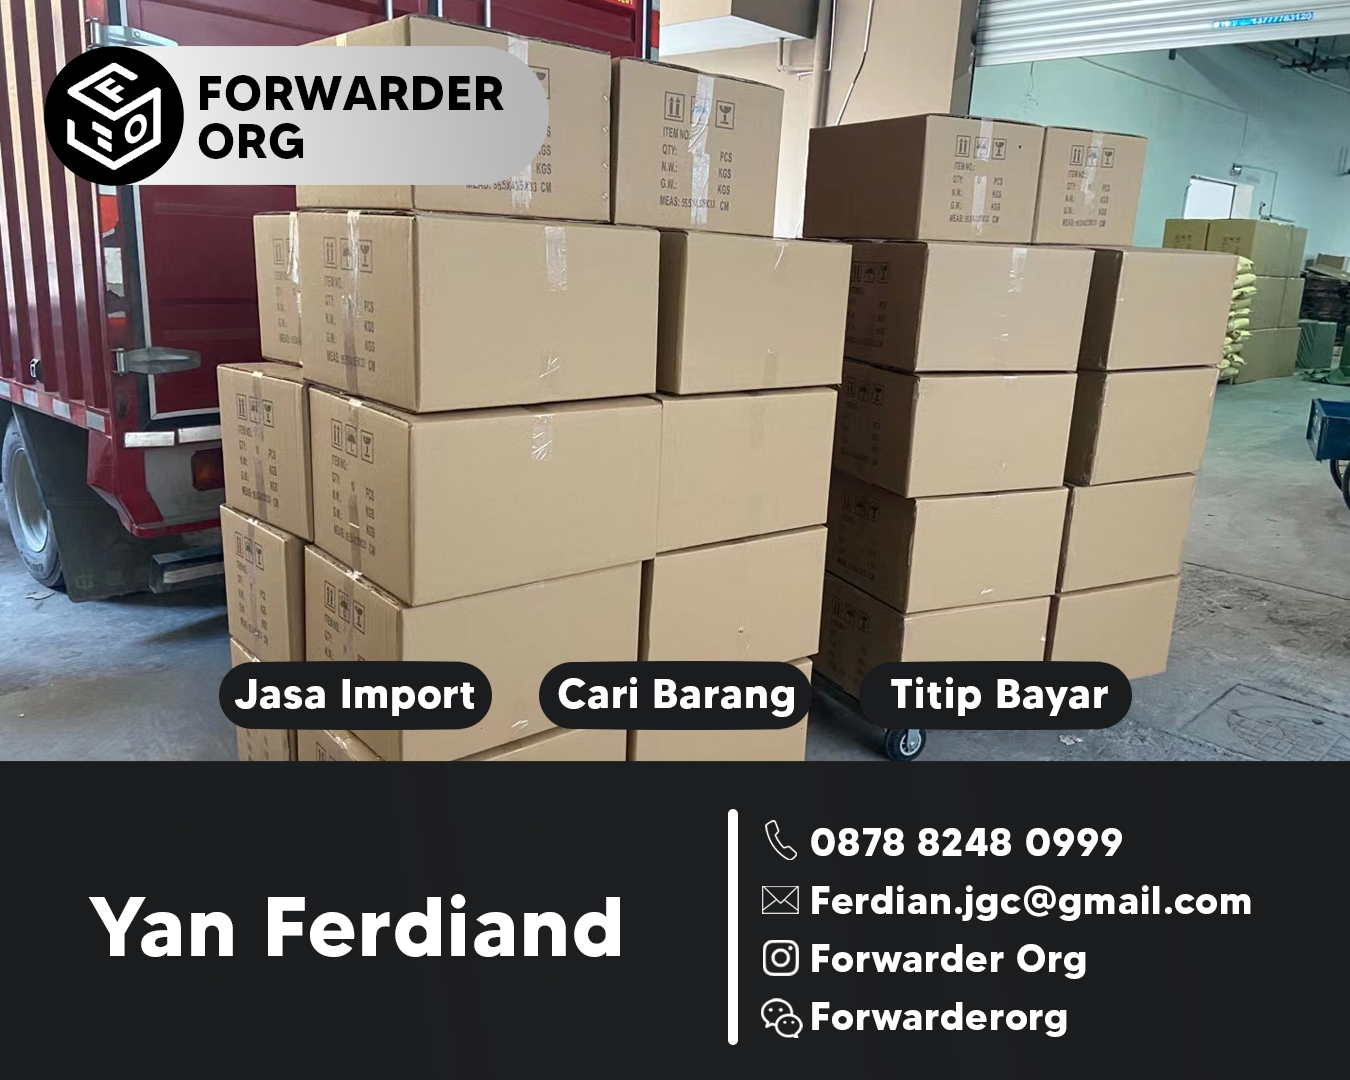 Jasa Import dari China FCL dan LCL Murah 2021 | FORWARDER ORG